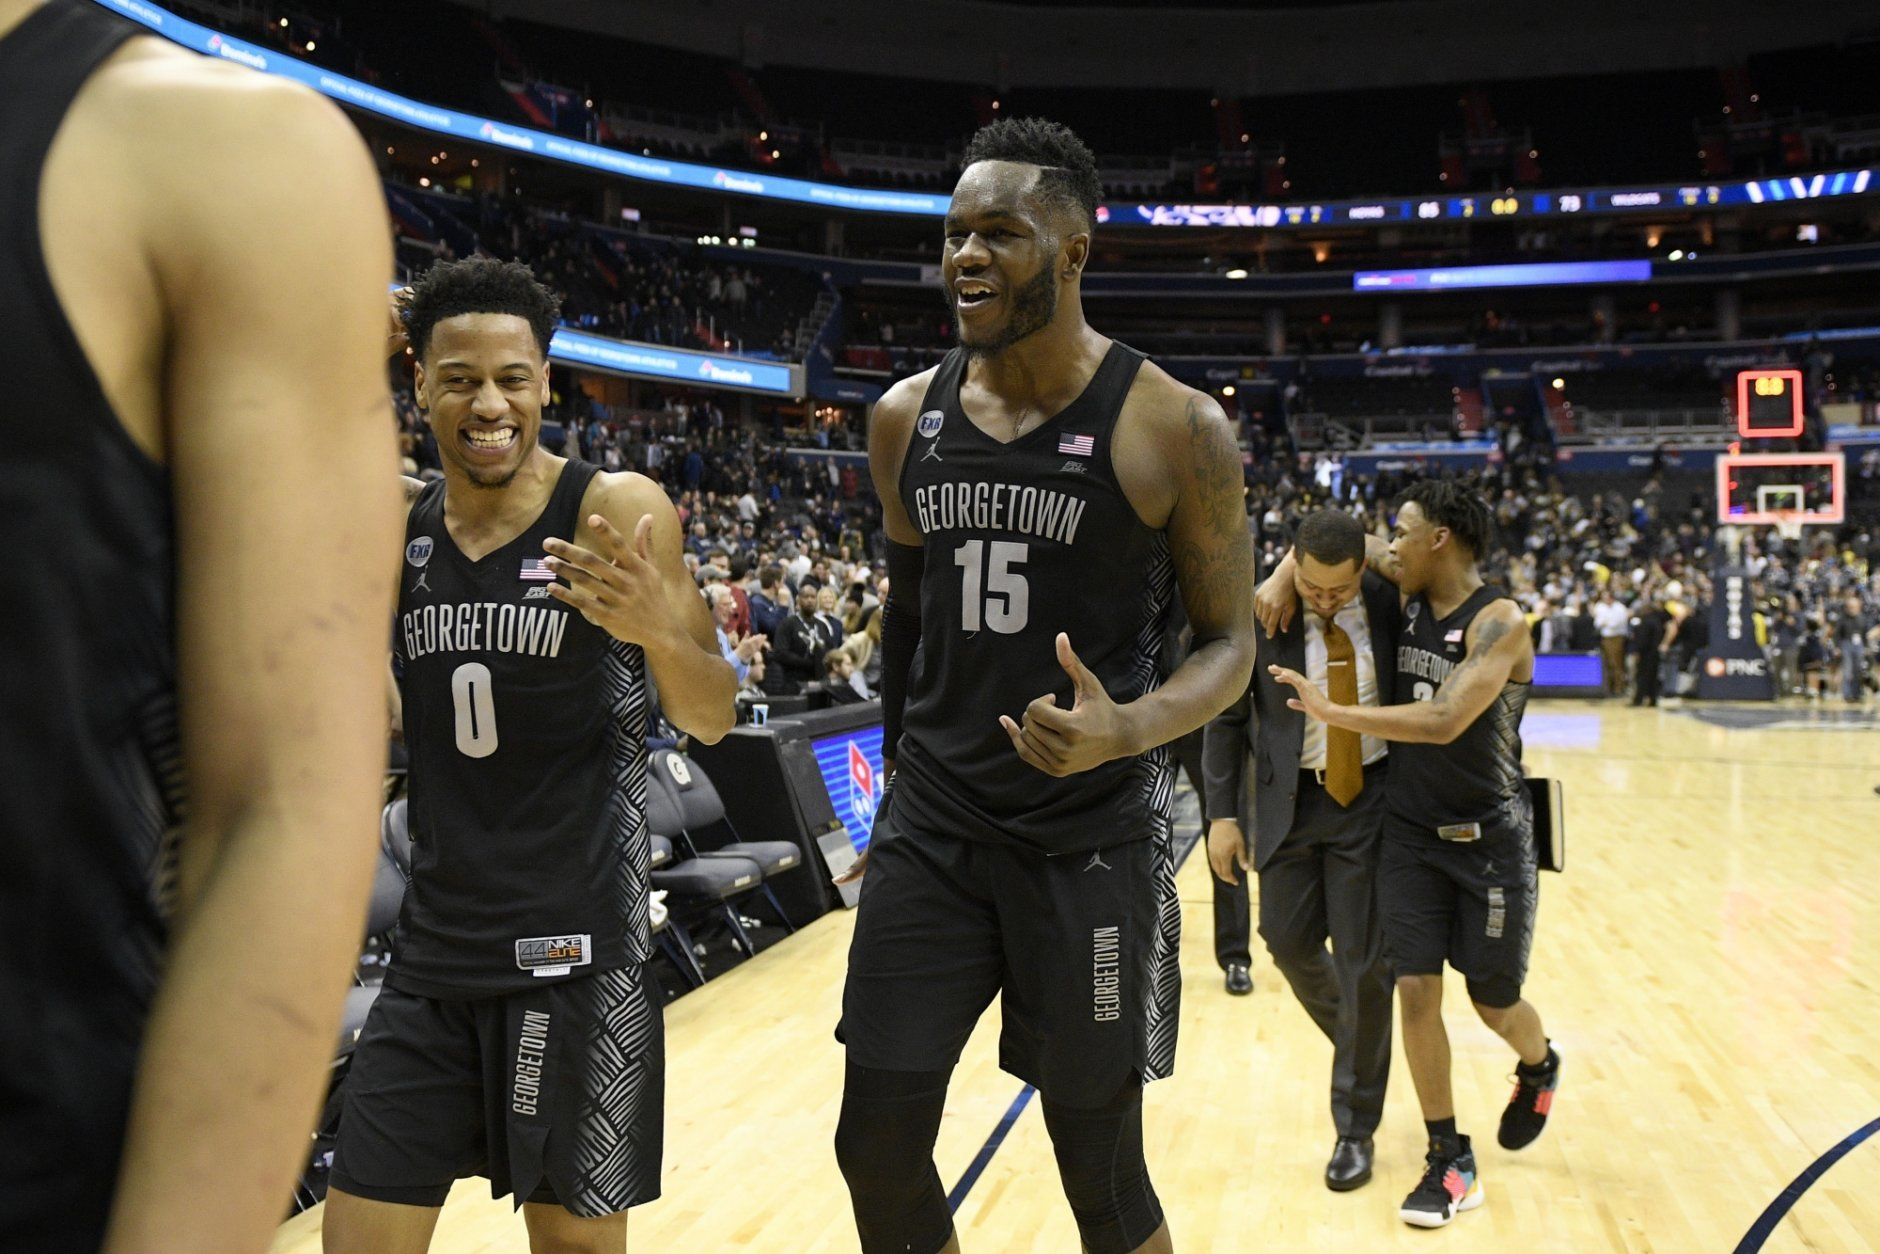 Georgetown guard Jahvon Blair (0), center Jessie Govan (15) and guard James Akinjo (3) react as they leave the court after an NCAA college basketball game against Villanova, Wednesday, Feb. 20, 2019, in Washington. Georgetown won 85-73. (AP Photo/Nick Wass)